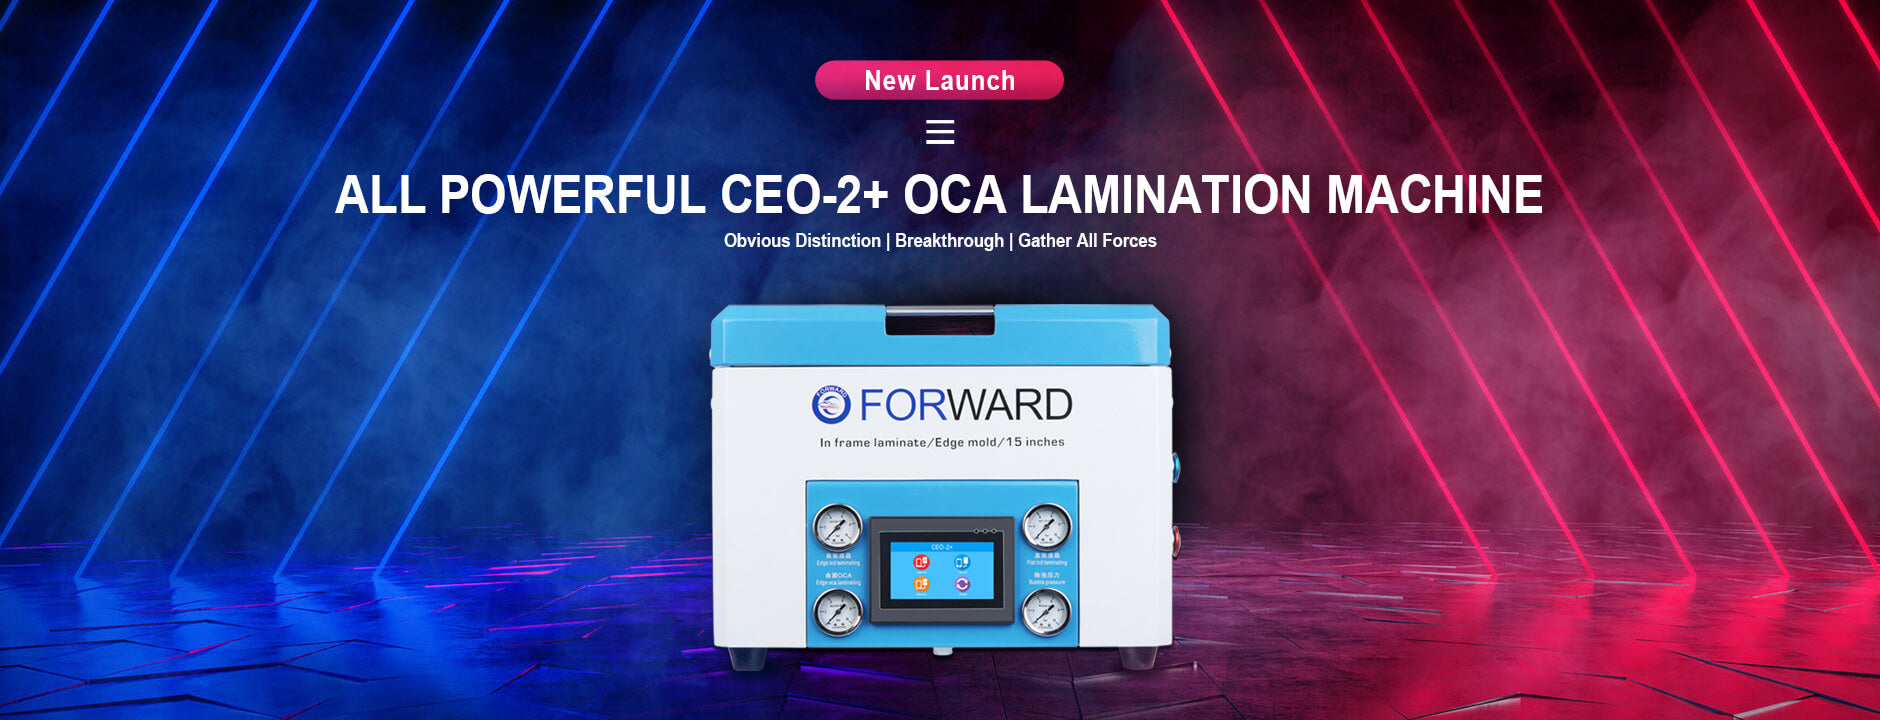 CEO-2+ All Powerful OCA Lamination Machine